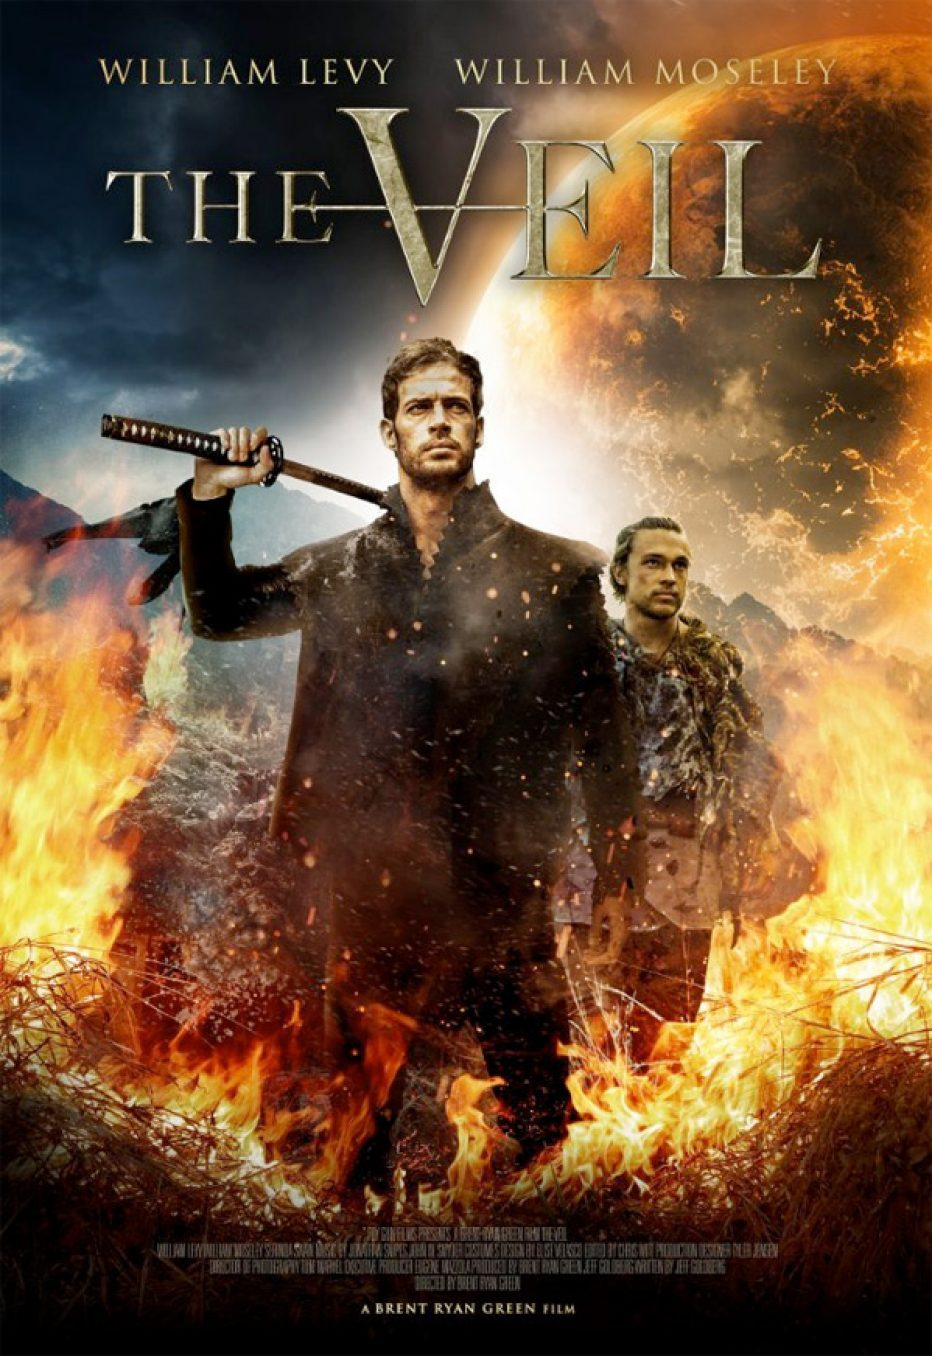 """THE VEIL"" SET FOR U.S RELEASE AUGUST 11"